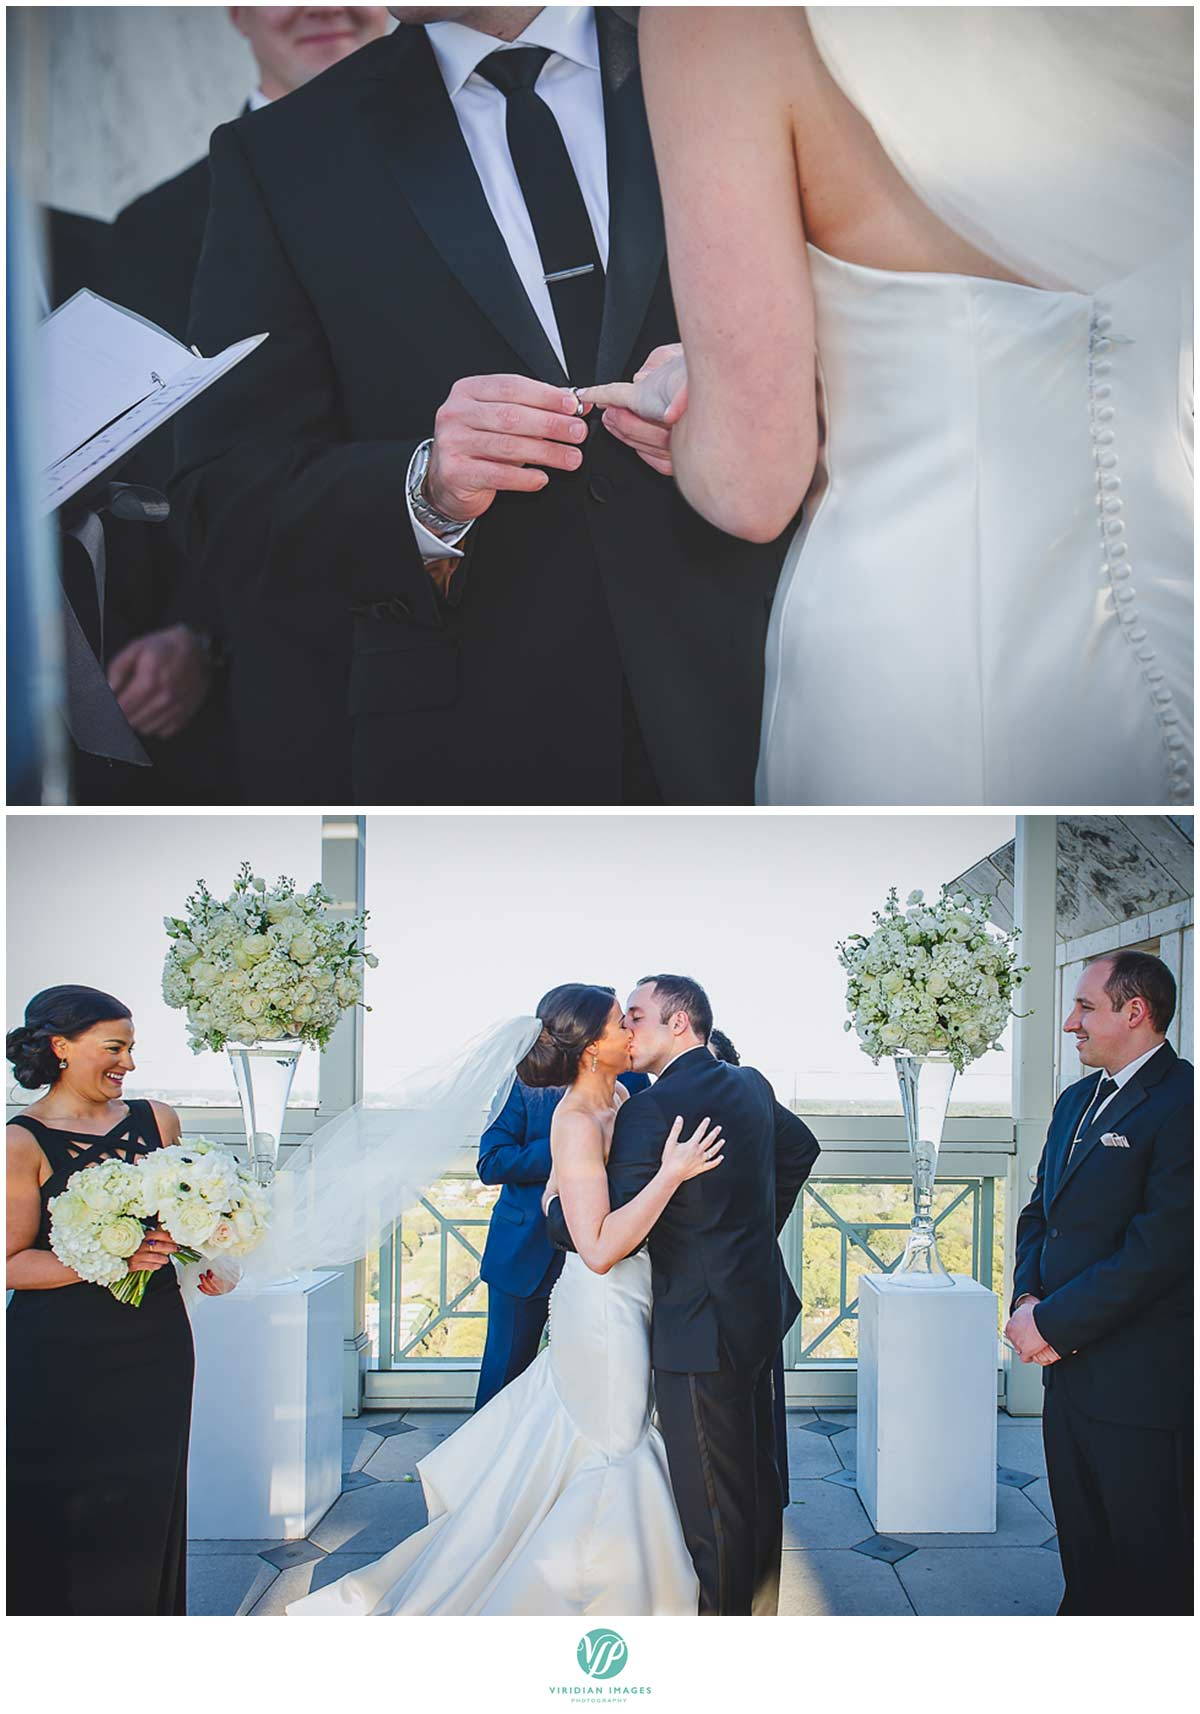 Peachtree_Club_Atlanta_Wedding_Viridian_Images_Photography-28